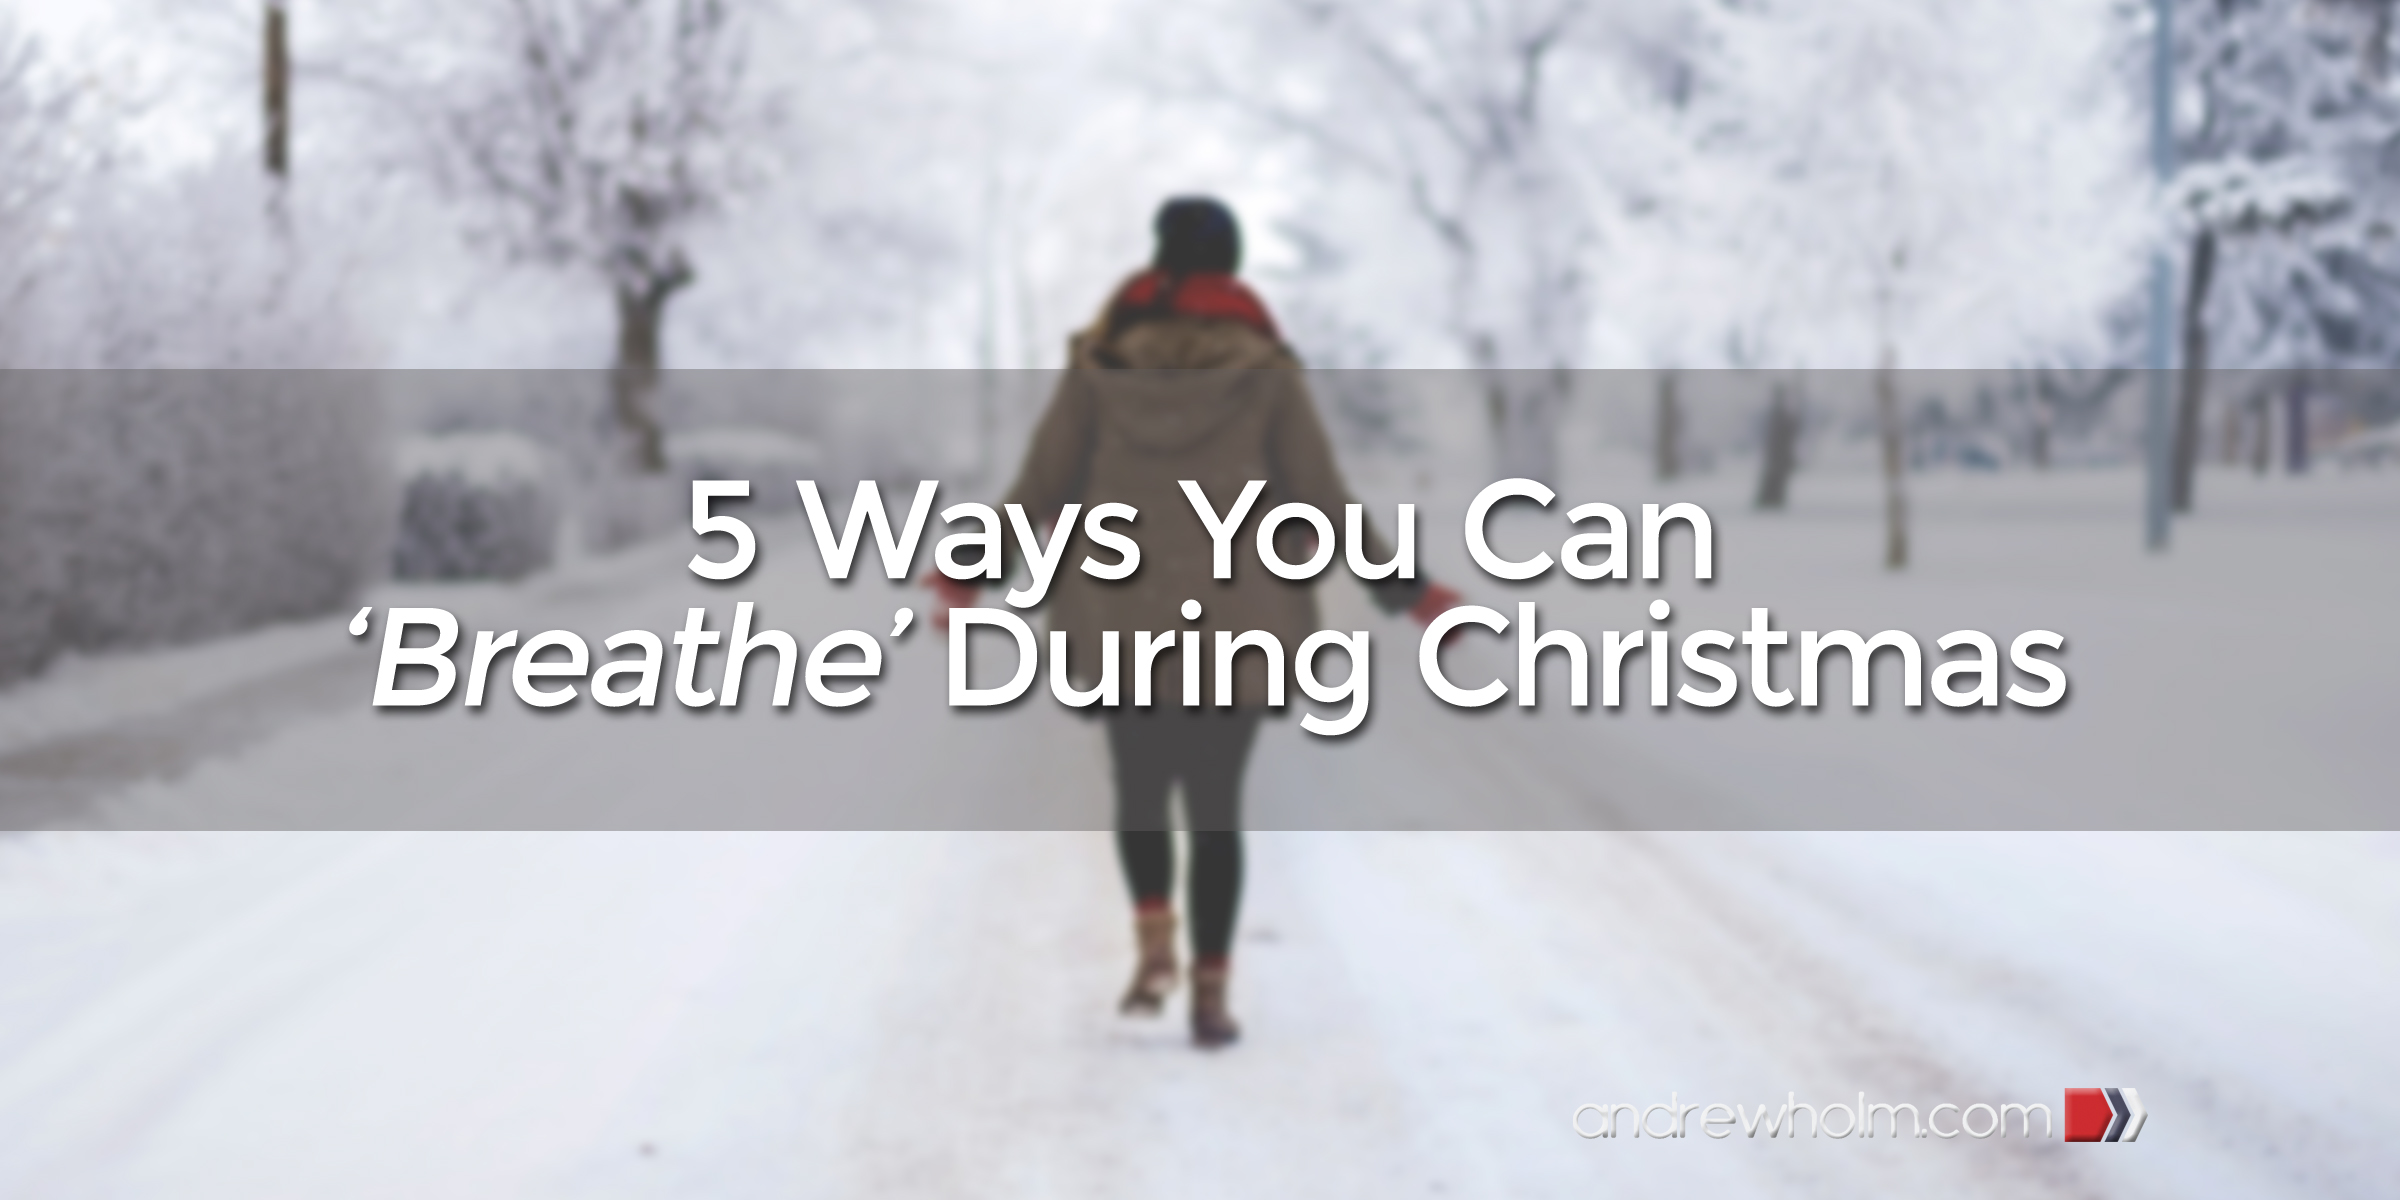 5 Ways You Can 'Breathe' This Christmas